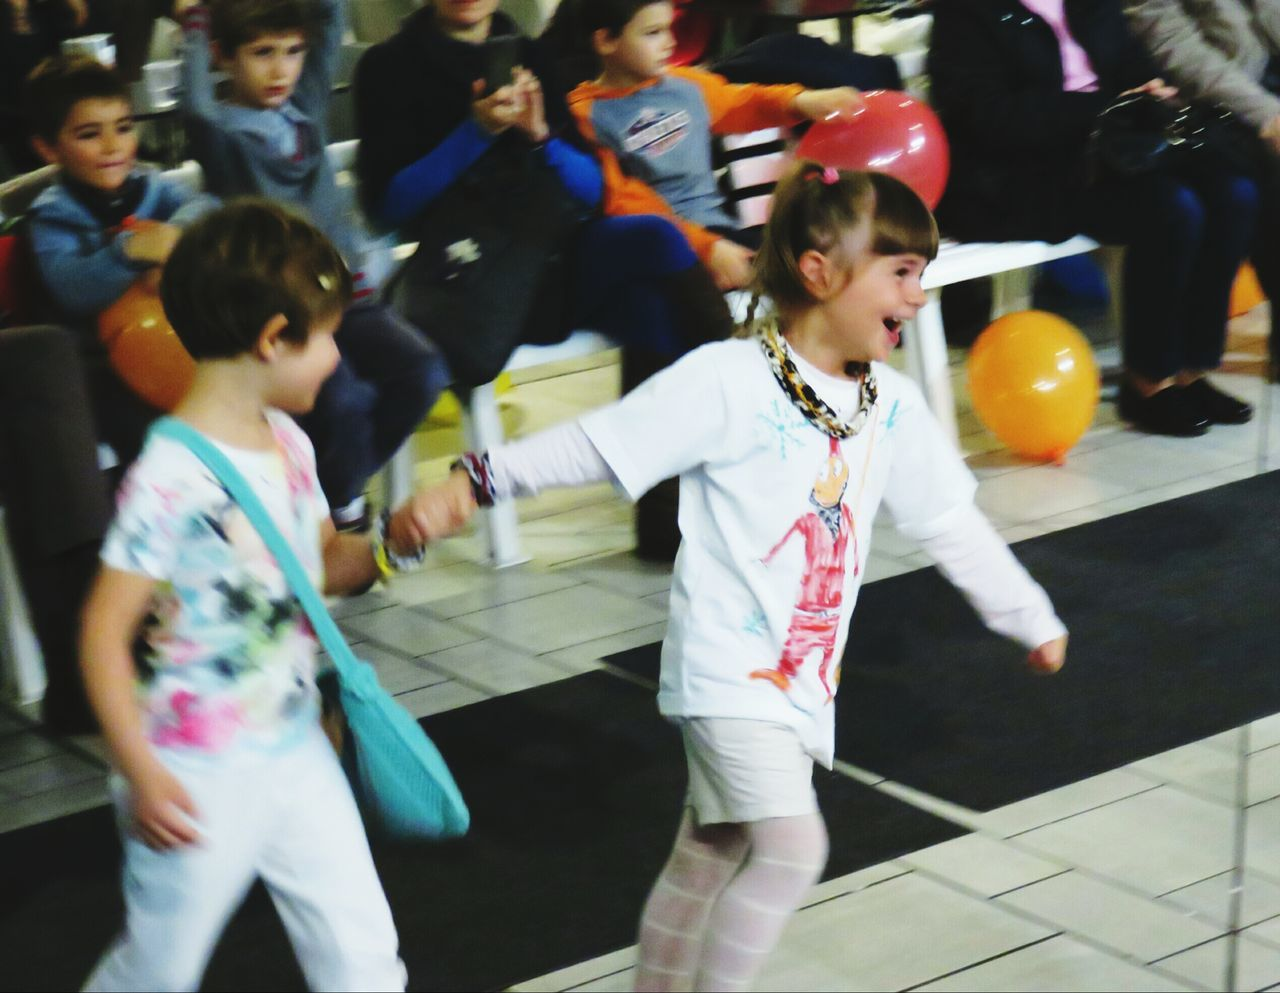 childhood, boys, girls, child, elementary age, leisure activity, enjoyment, lifestyles, real people, togetherness, walking, casual clothing, full length, playing, happiness, day, indoors, school uniform, people, adult